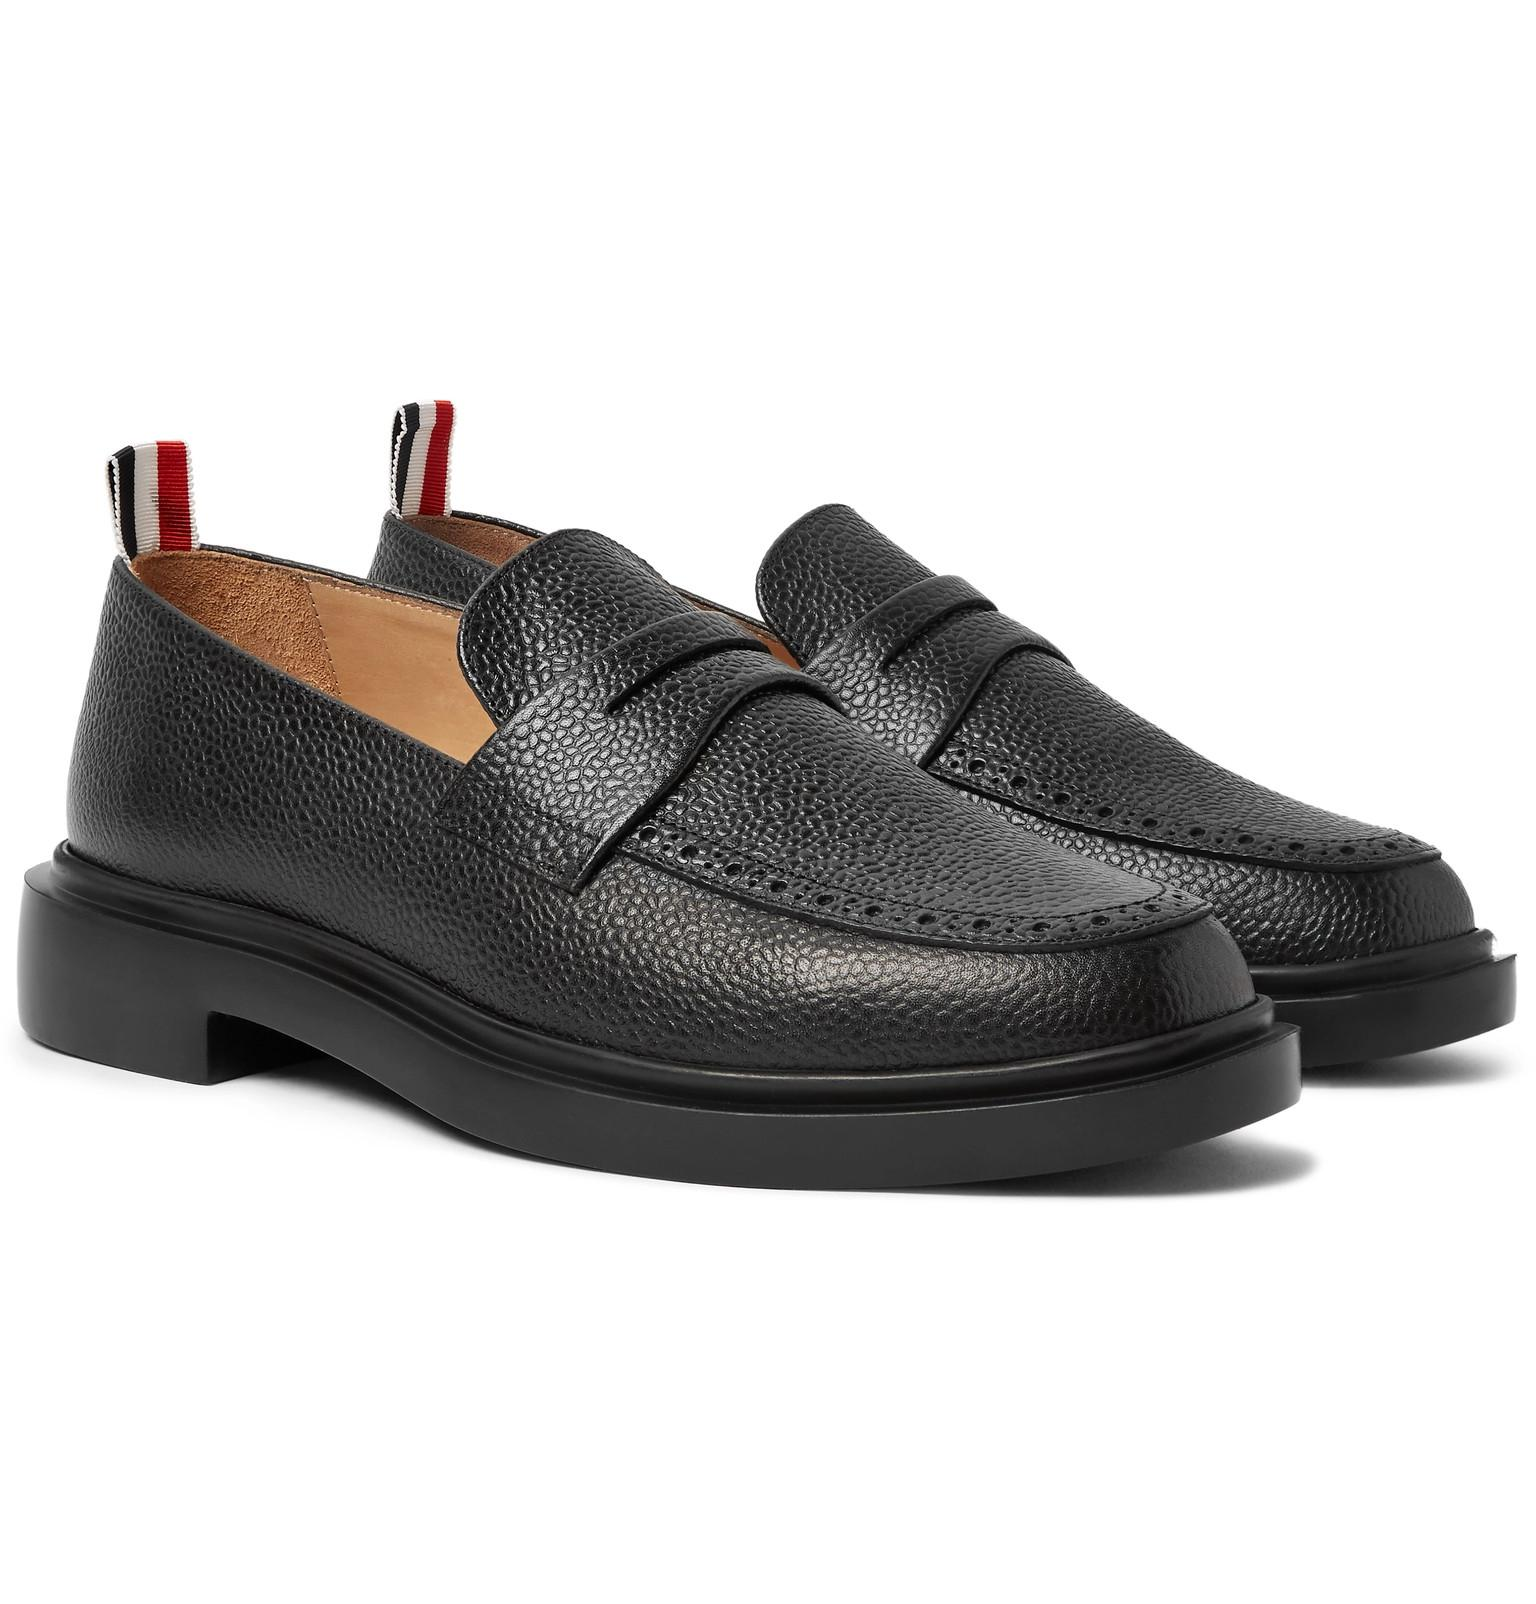 34bbed273df Lyst - Thom Browne Pebble-grain Leather Penny Loafers in Black for ...